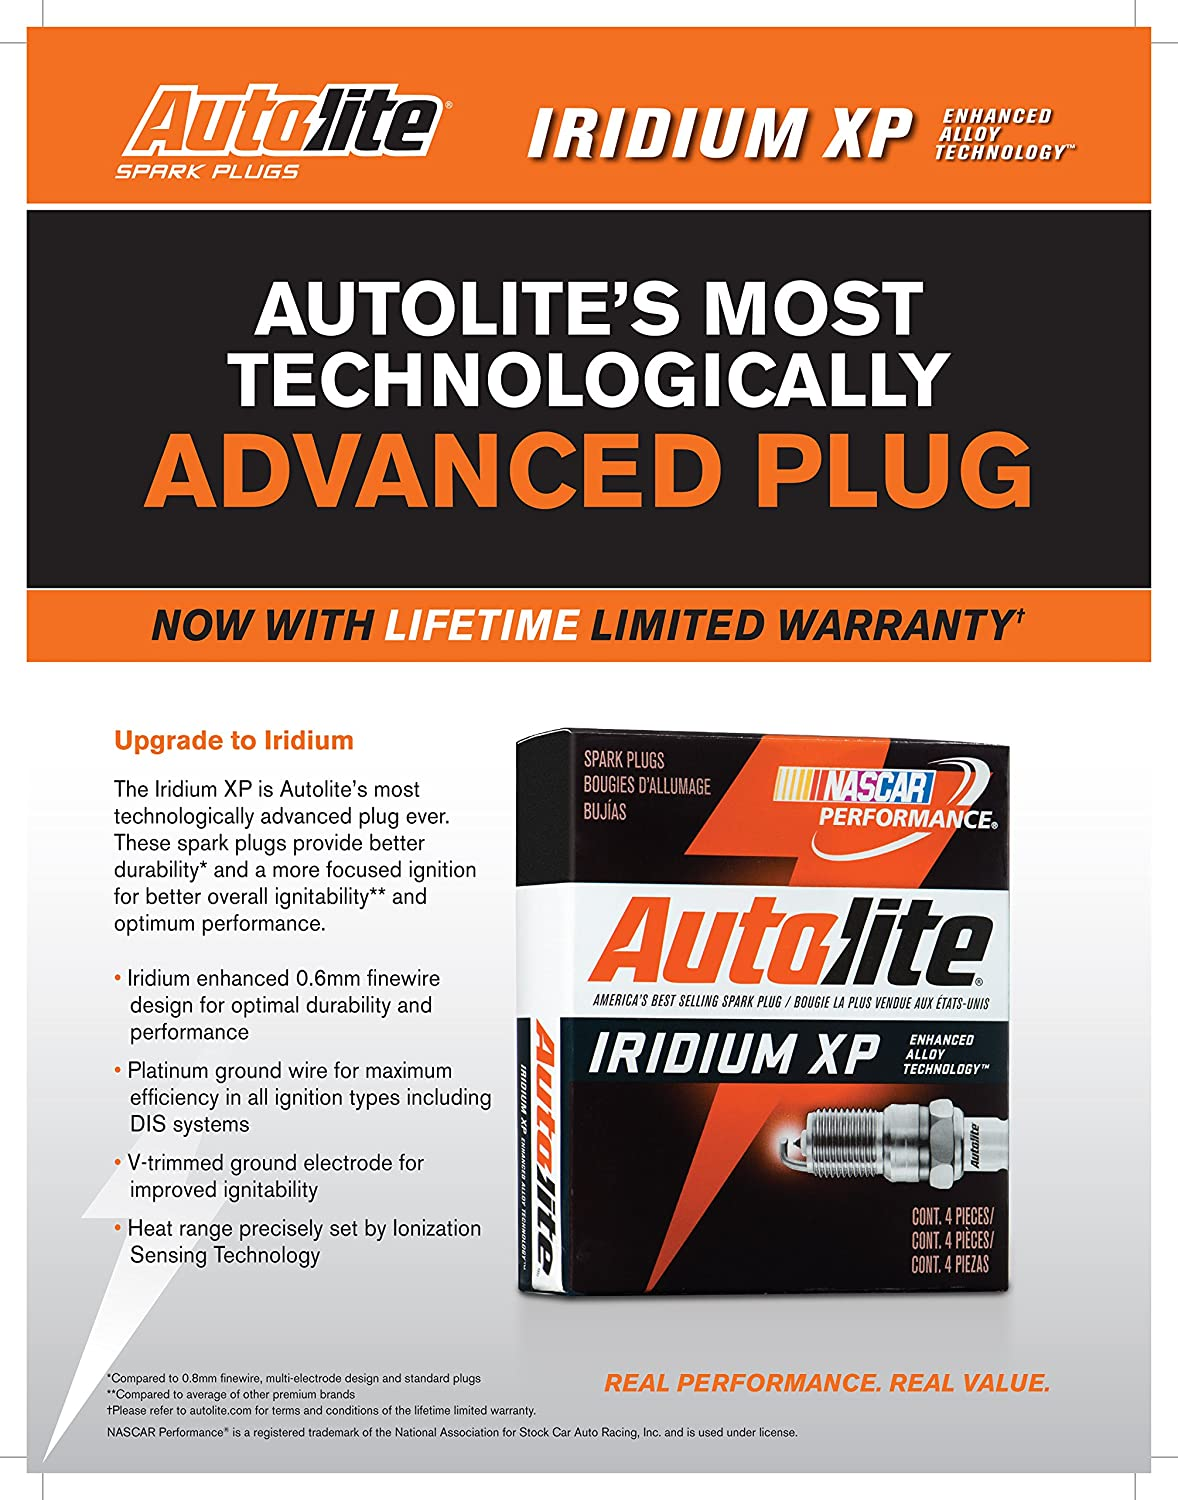 Autolite XP5701 Iridium XP Spark Plug Pack of 1